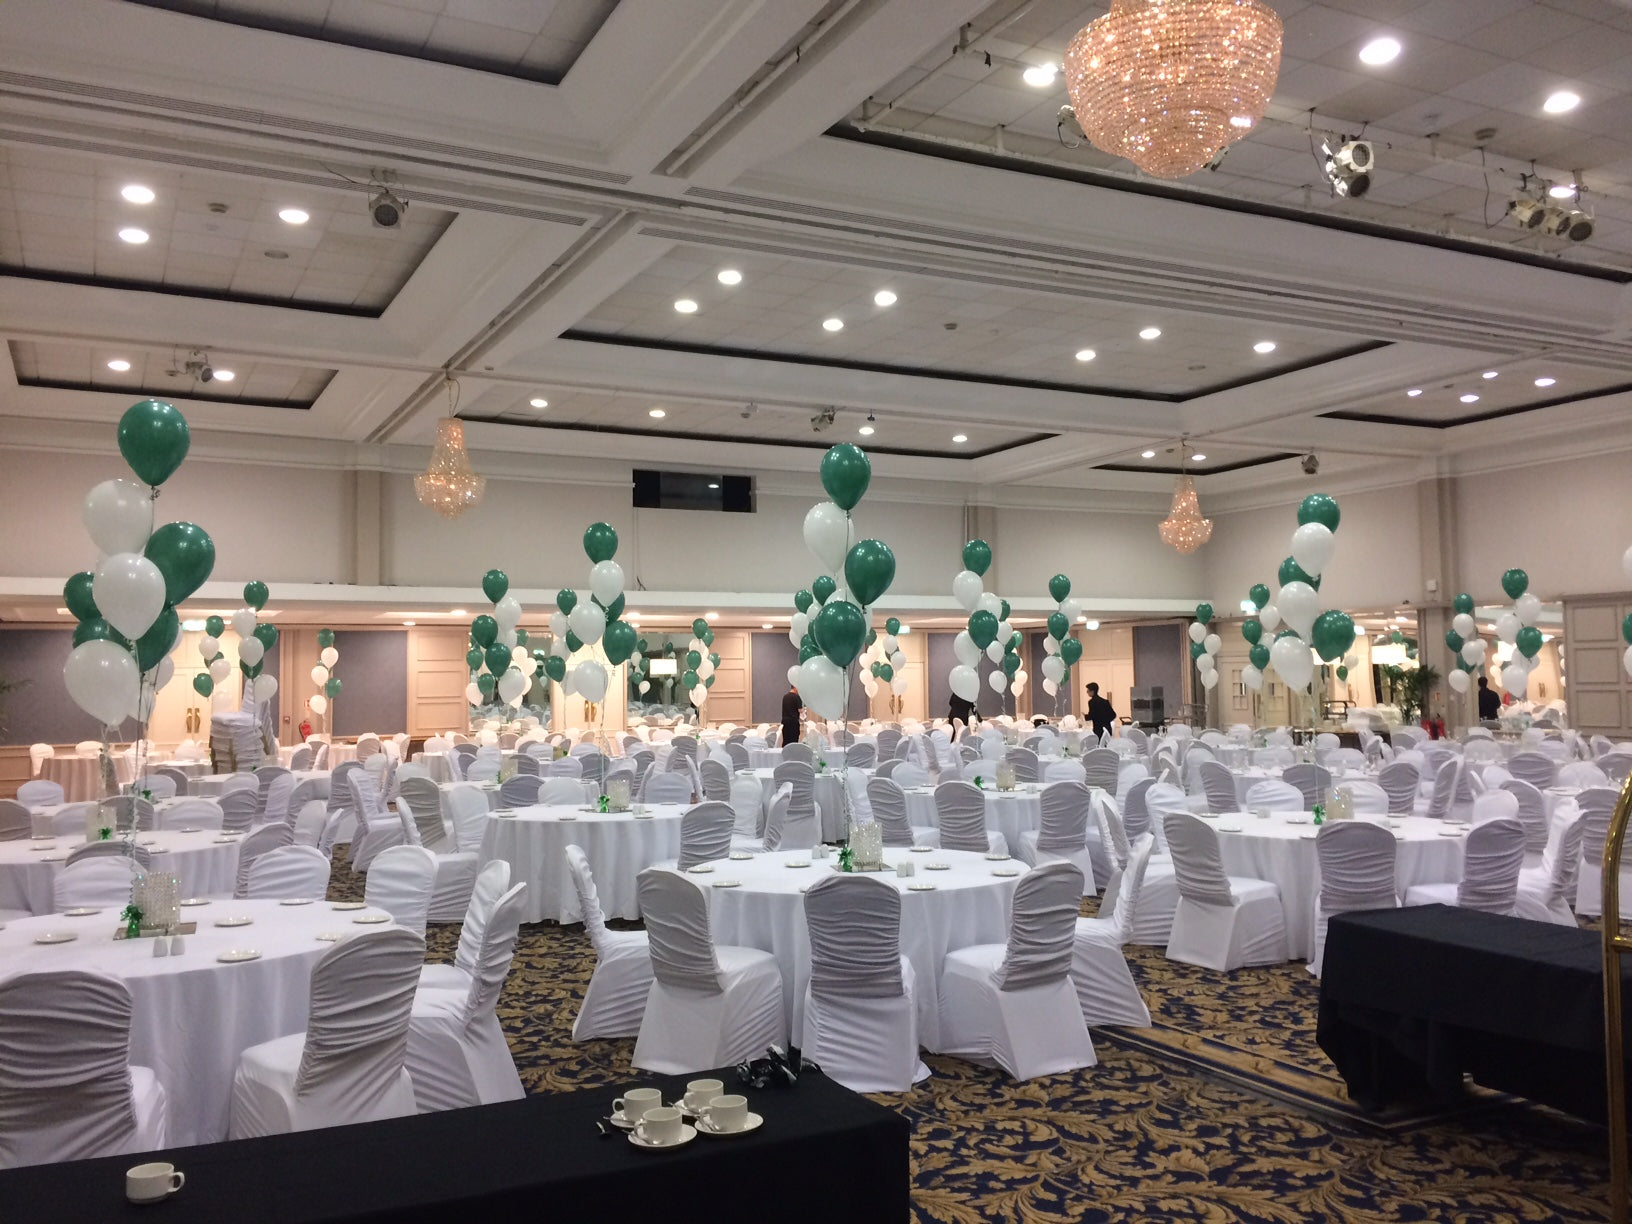 Green and white balloon bouquets on tables in a hotel function room.